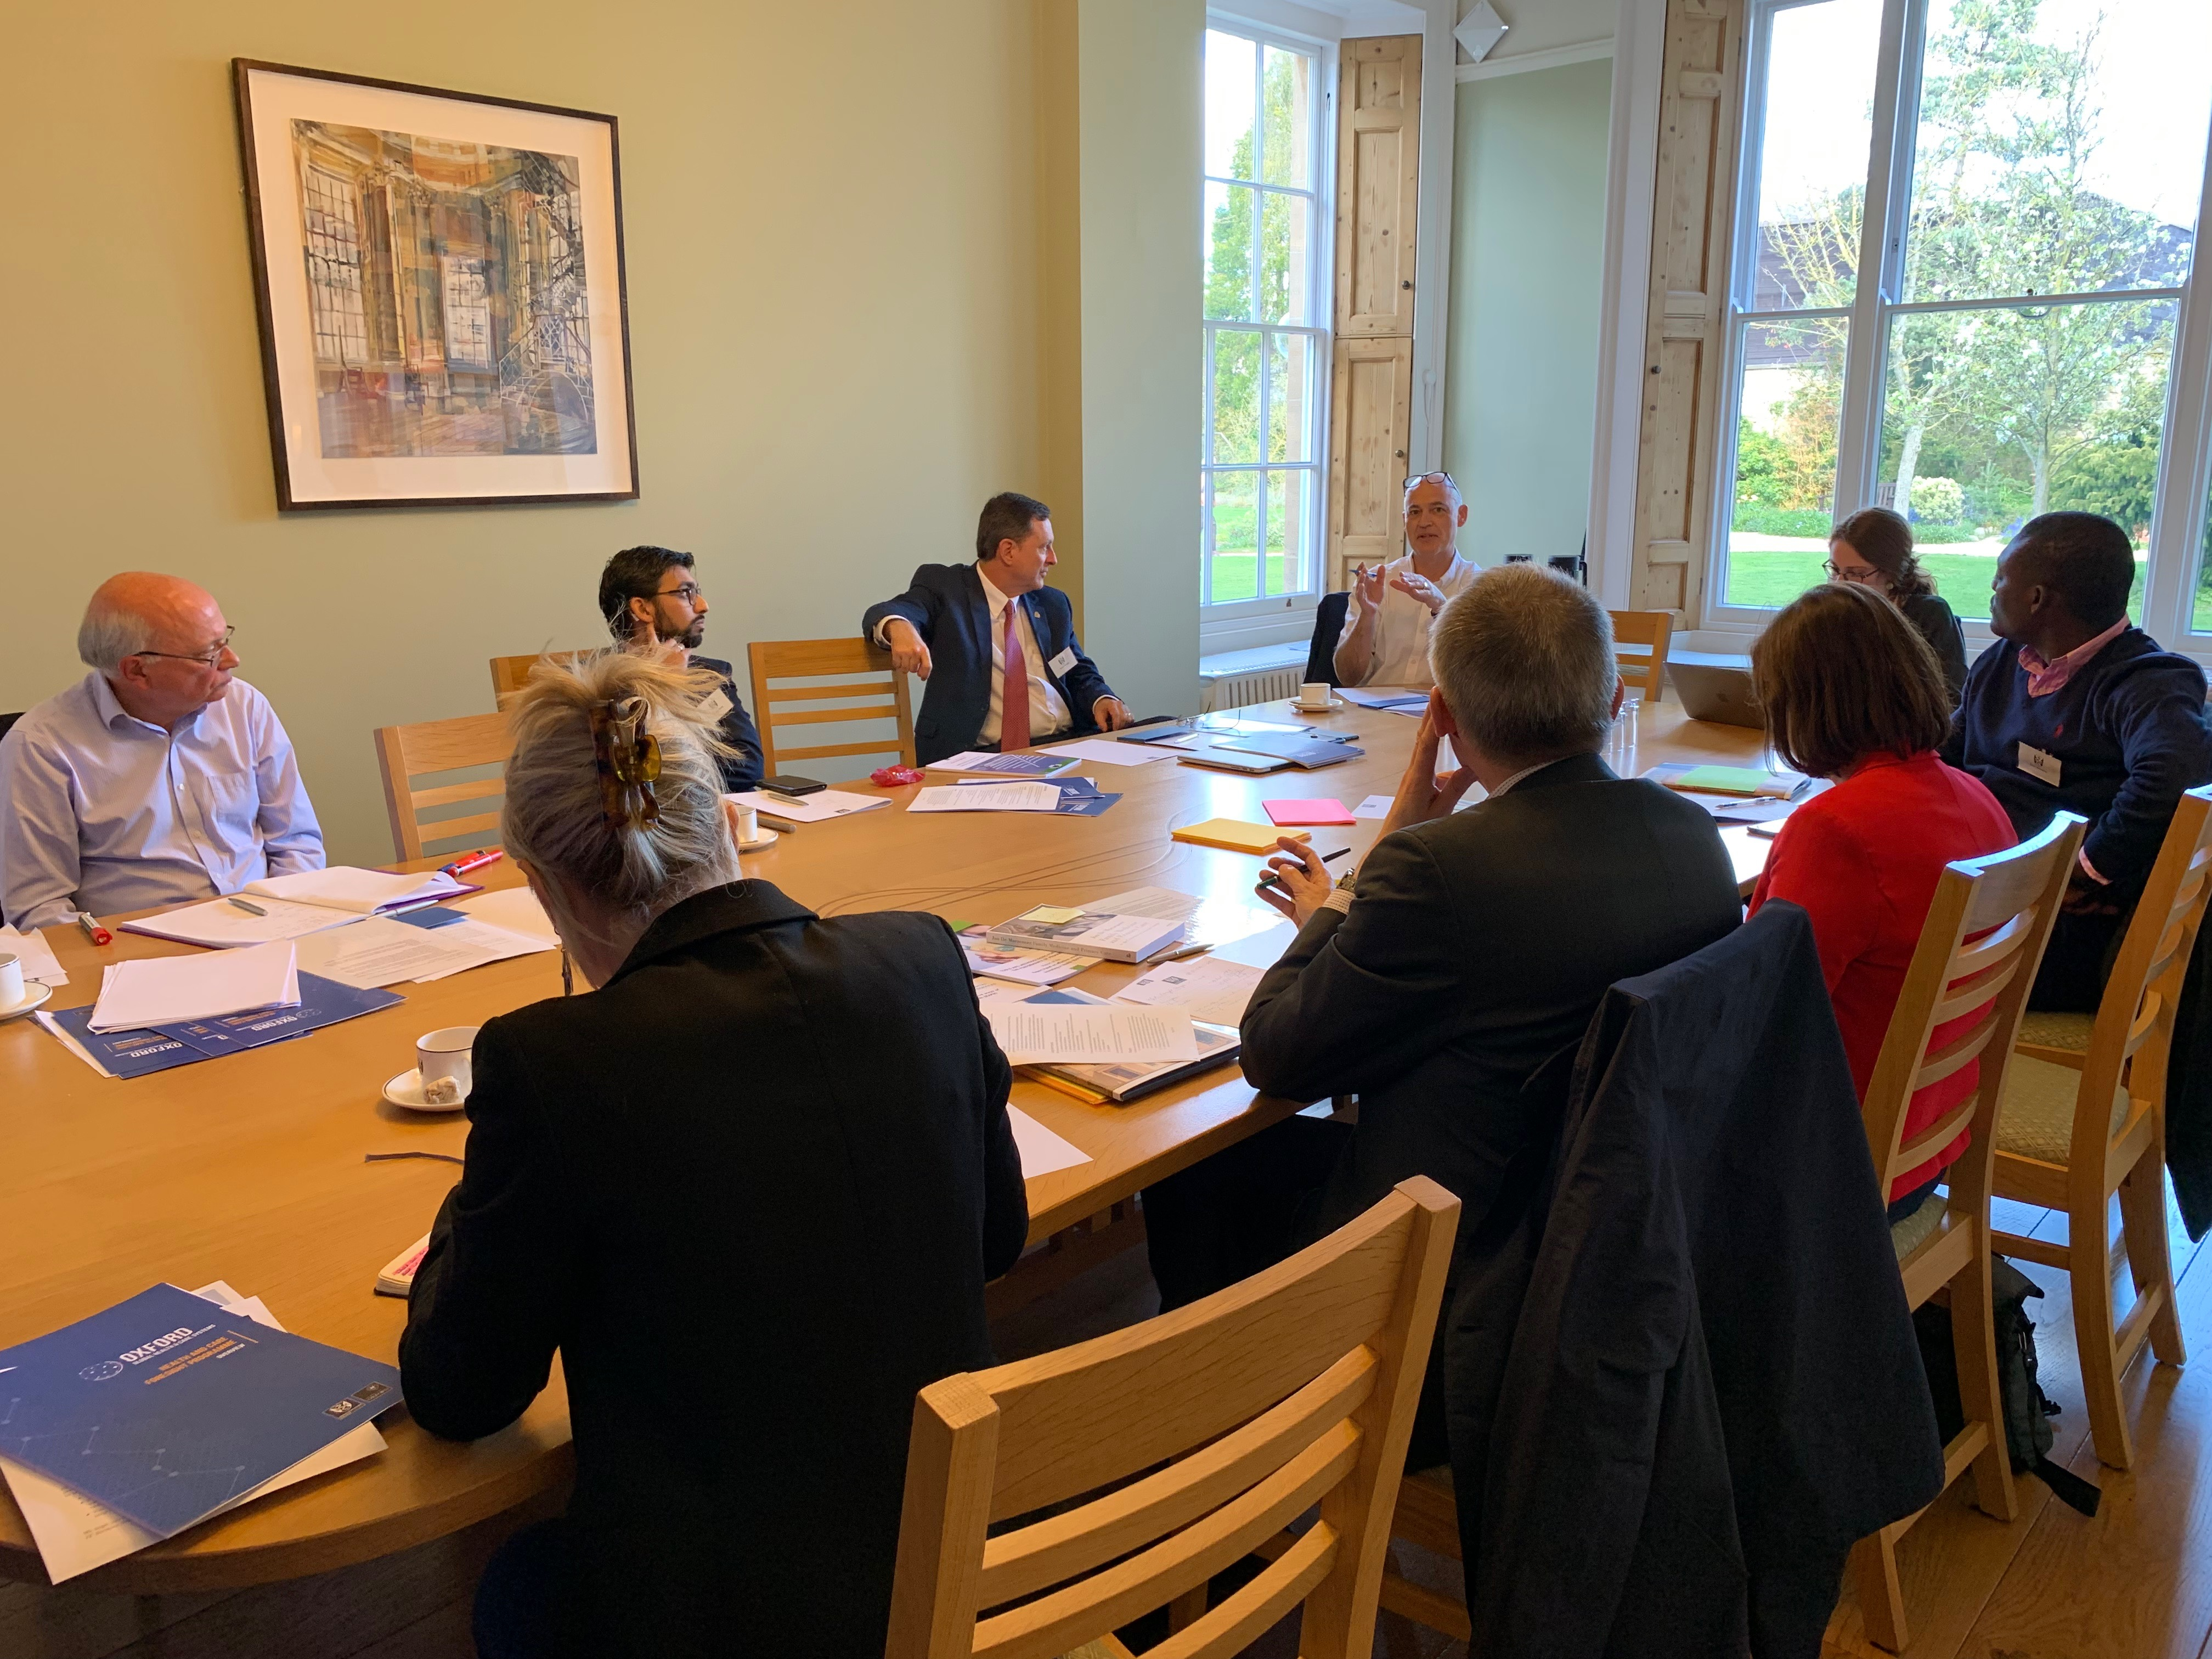 Foresight Pilot Workshop, held at Green Templeton College on 25 March 2019